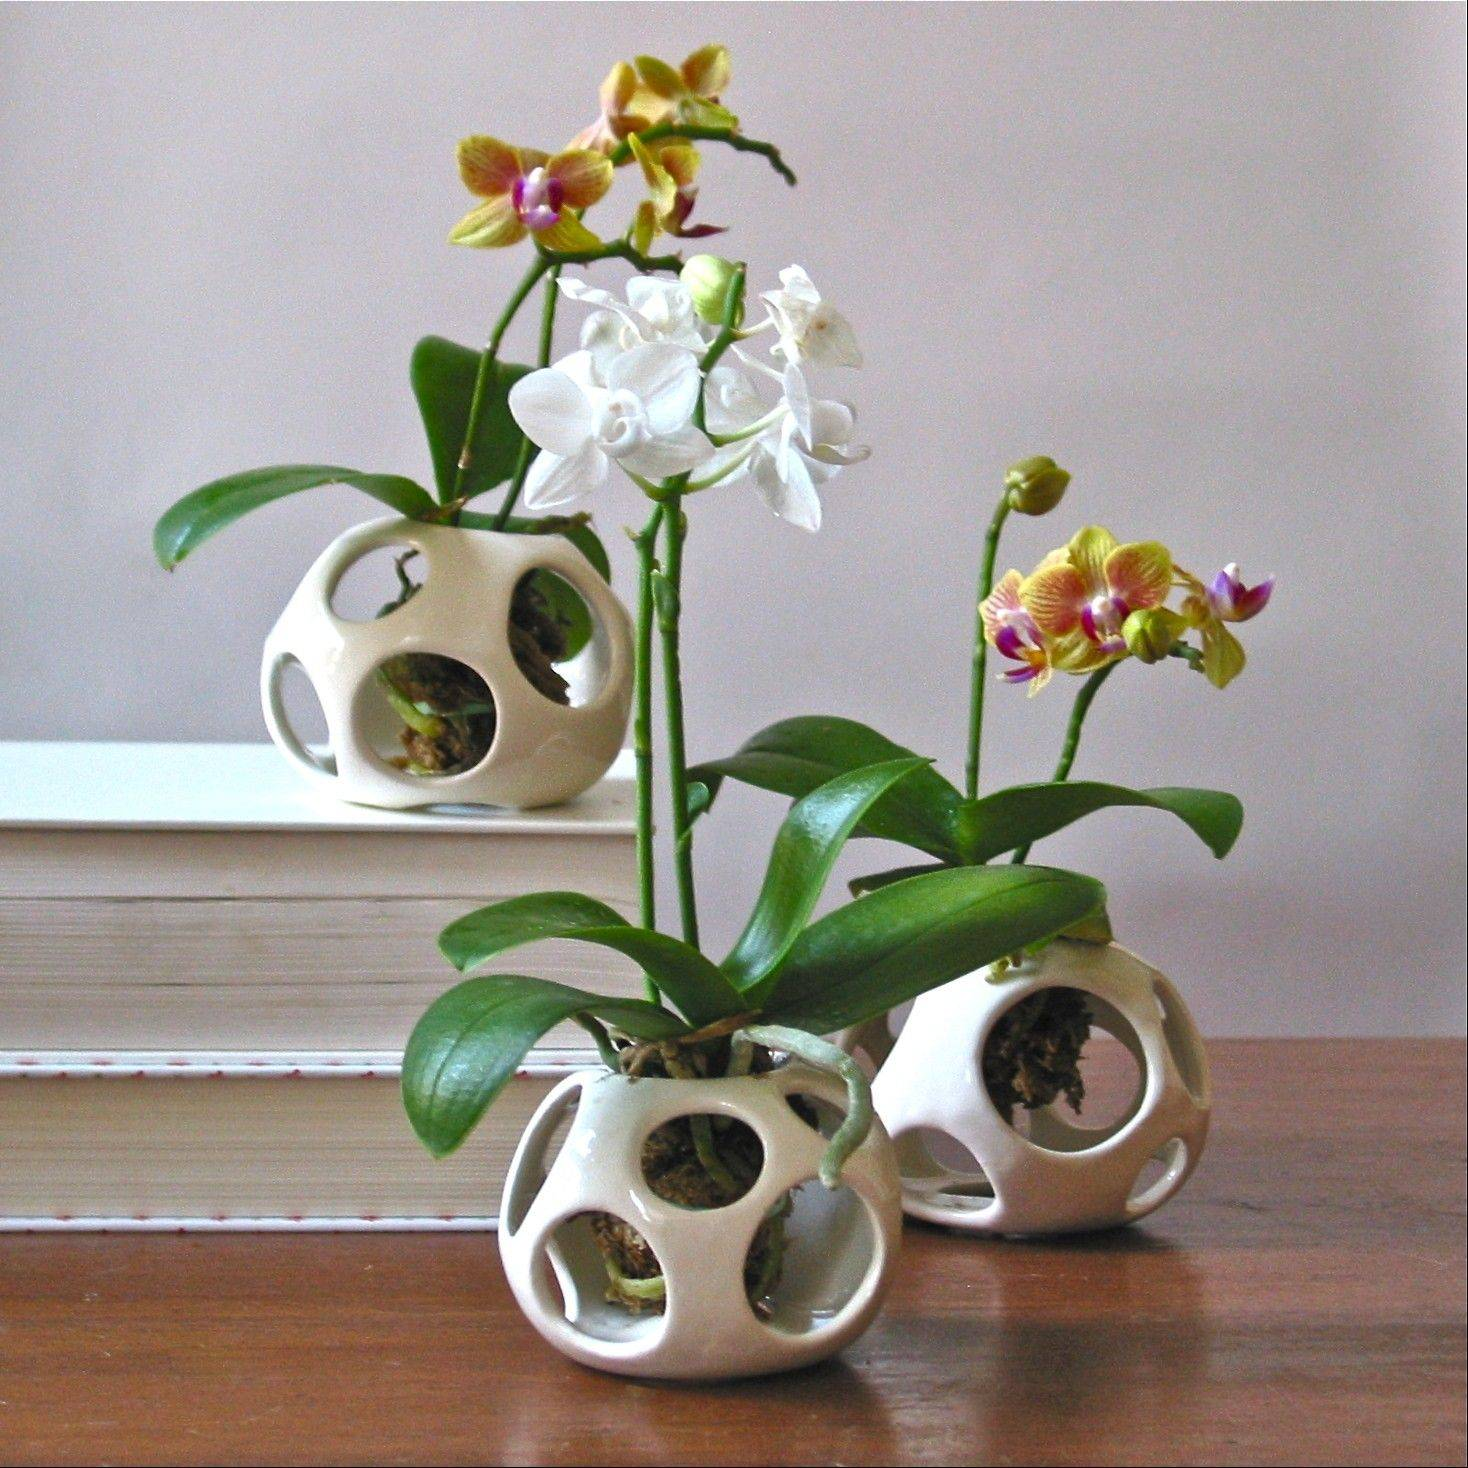 In this undated image released by air pod plant holders, New York-based ceramic artist Nicholas Newcombís earthenware air pod holders showcase miniature orchids in New York.